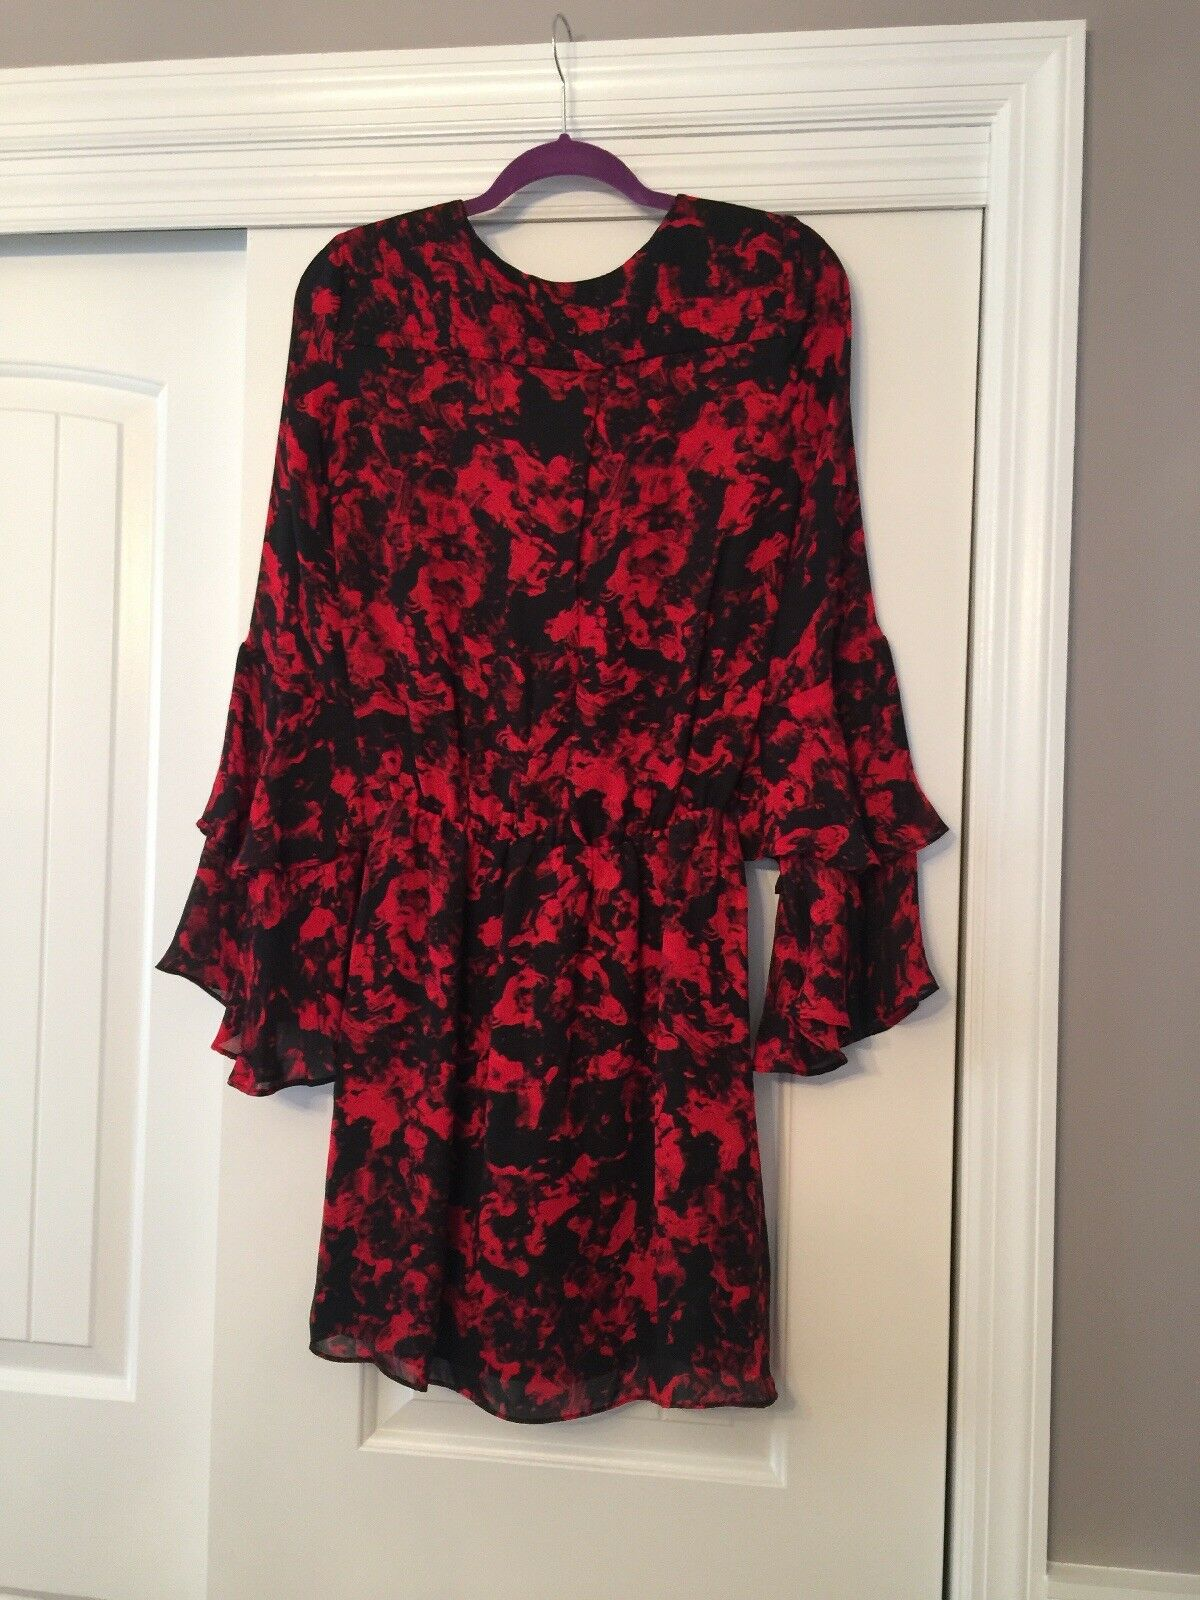 Parker damen's Dress XS rot And schwarz Print Retail Value